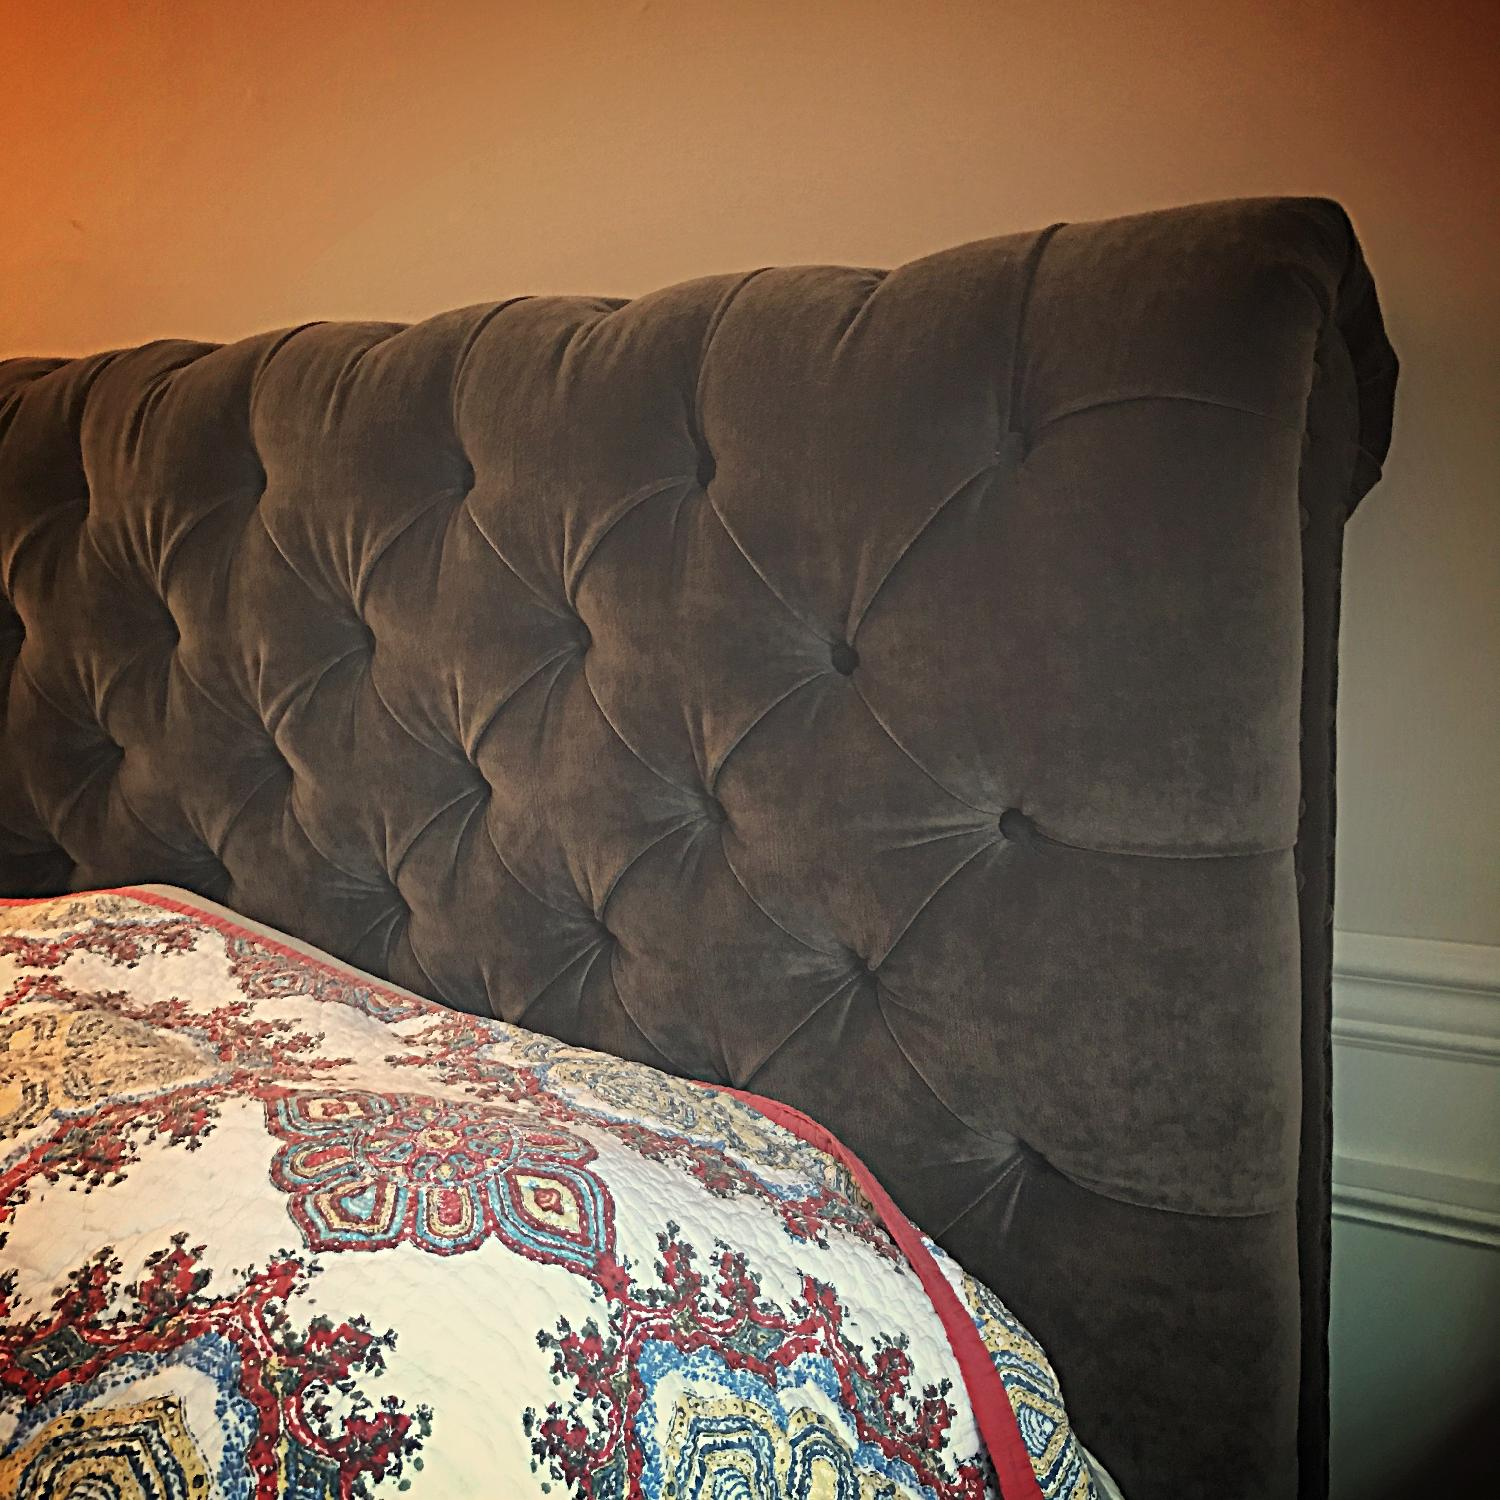 Pottery Barn Chesterfield Queen Size Storage Bed - image-7